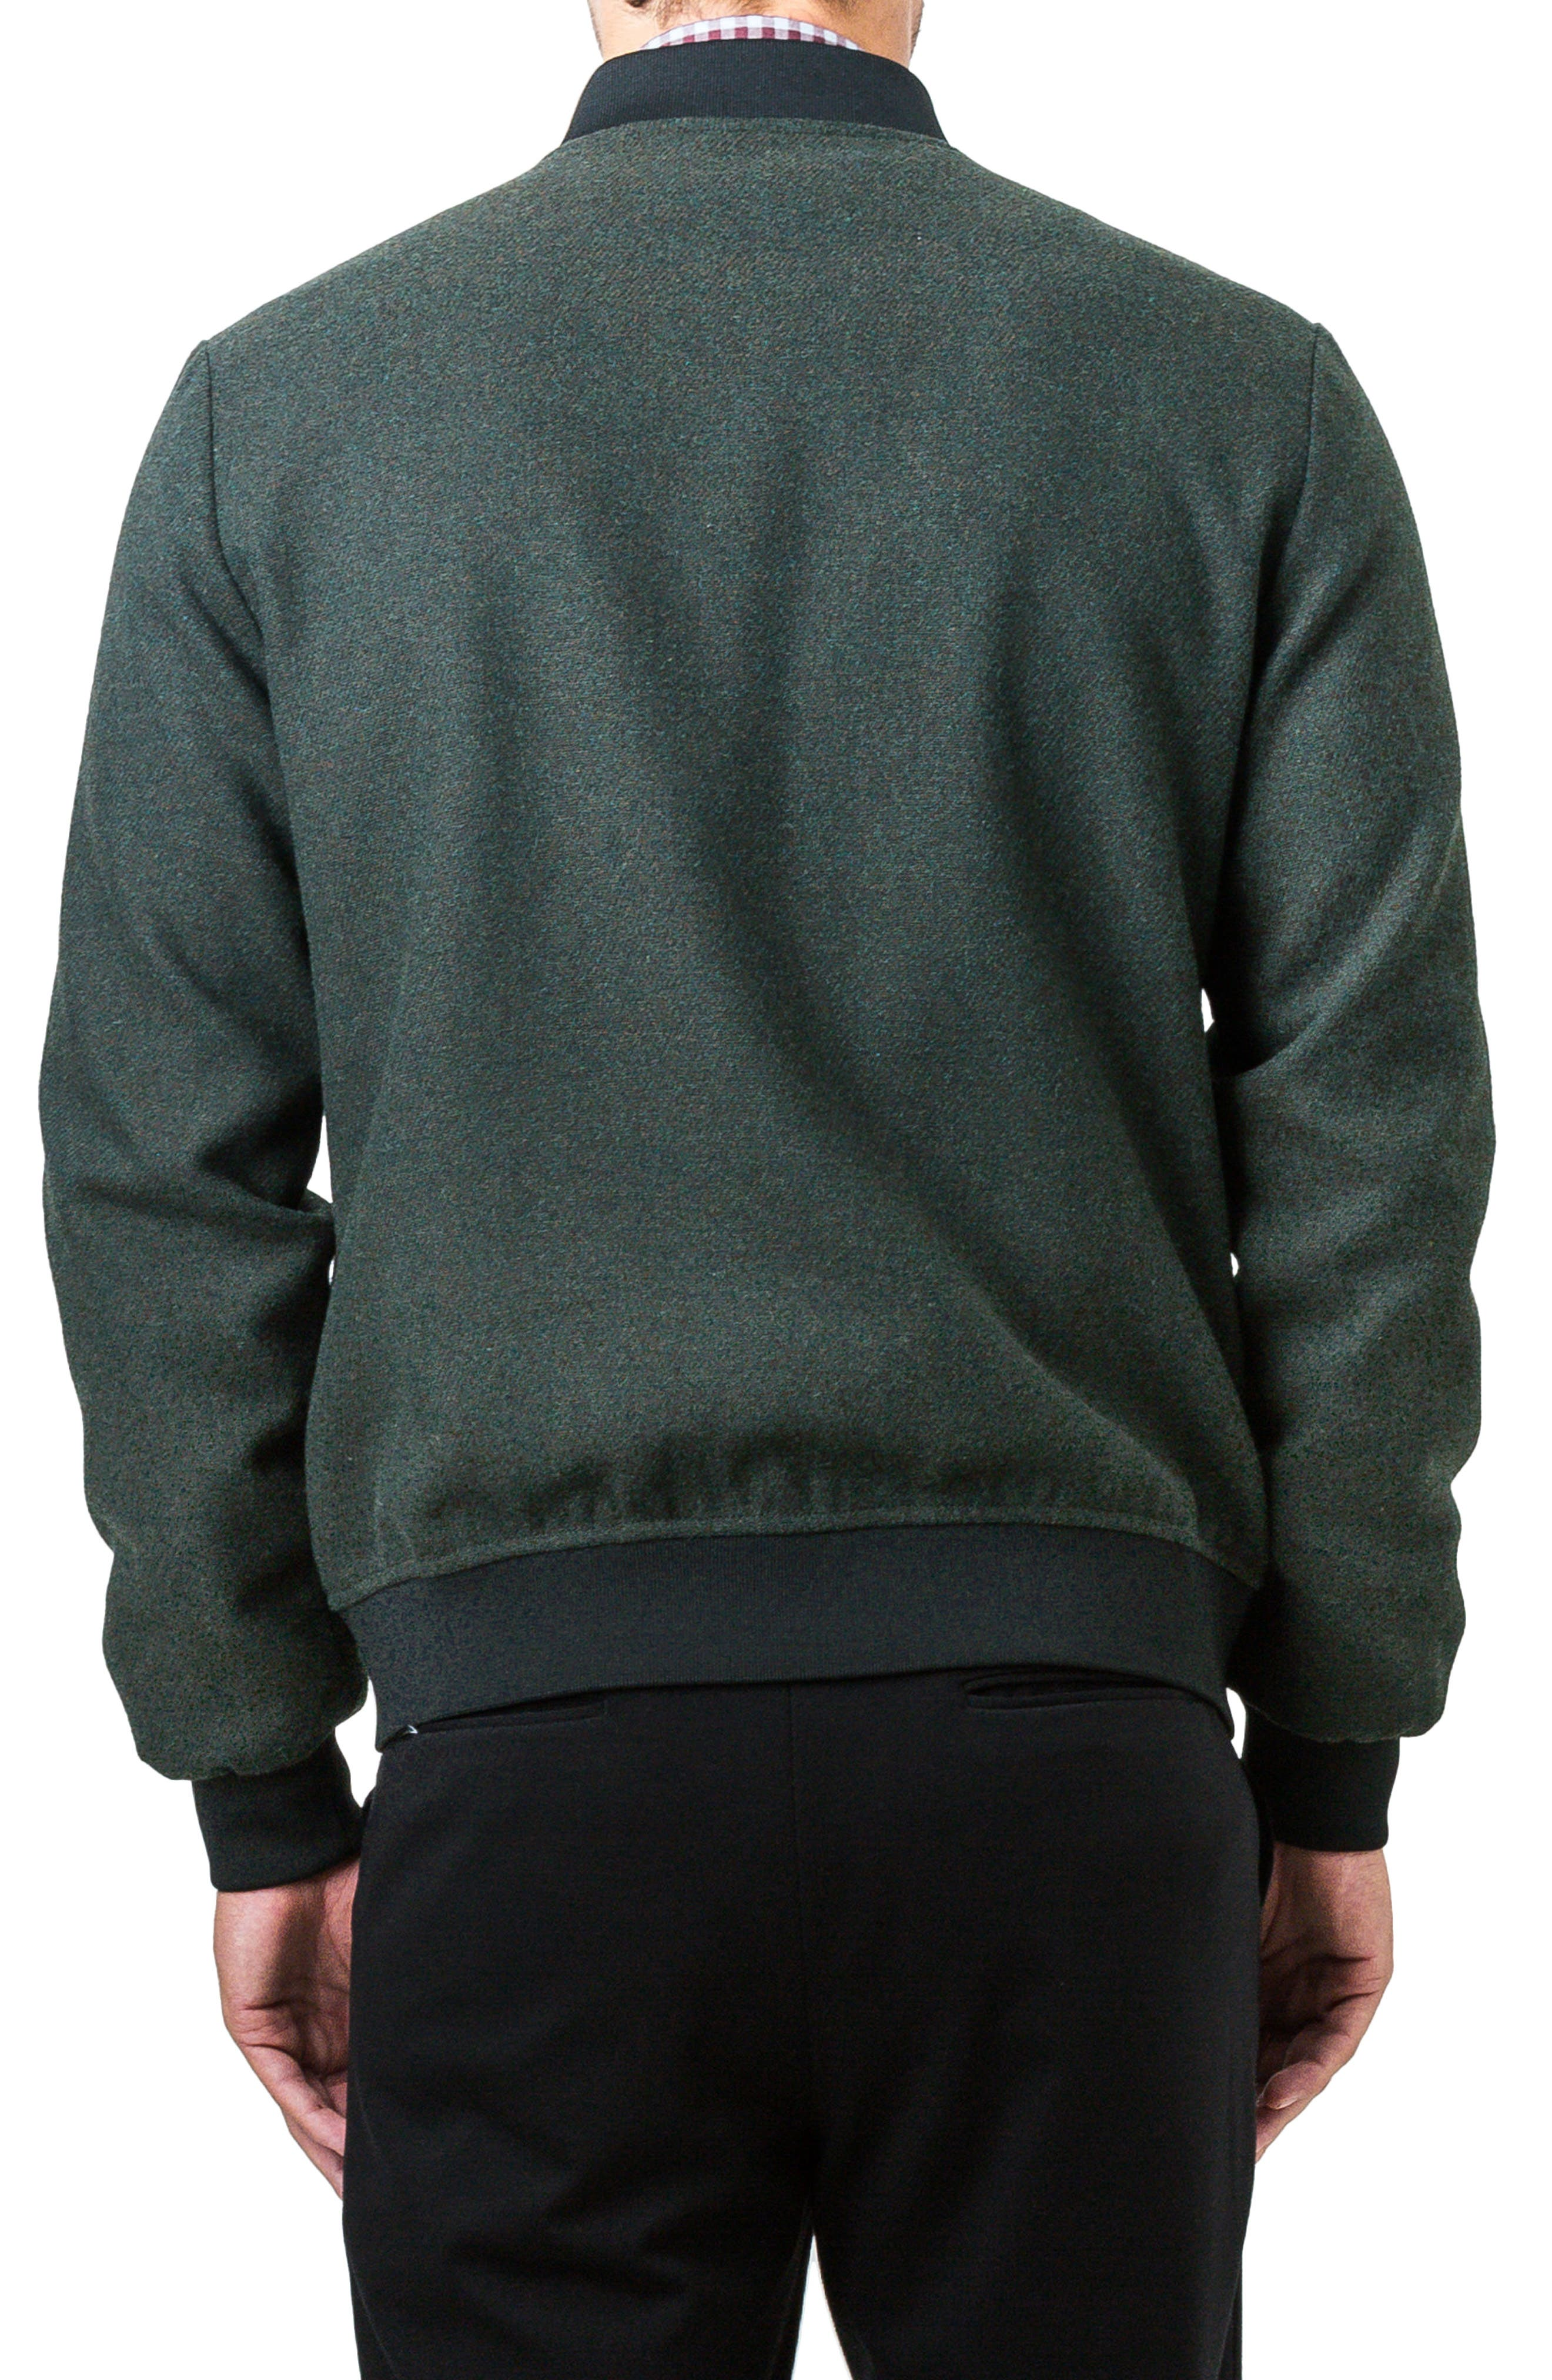 Aether Bomber Jacket,                             Alternate thumbnail 6, color,